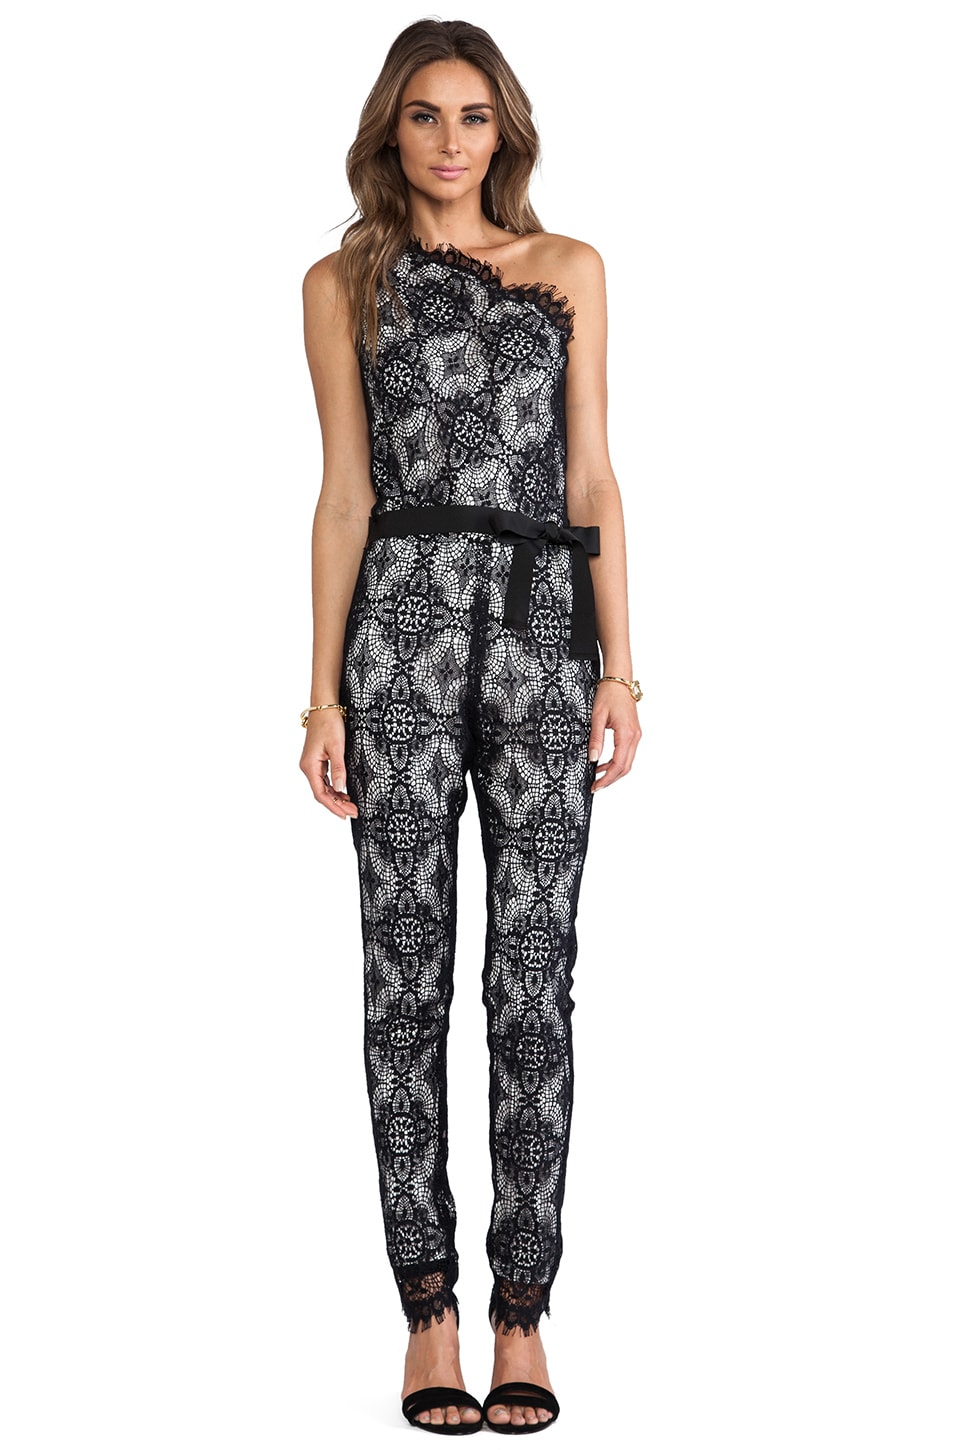 Alexis Blanchett One Shoulder Jumpsuit in Black Crochet